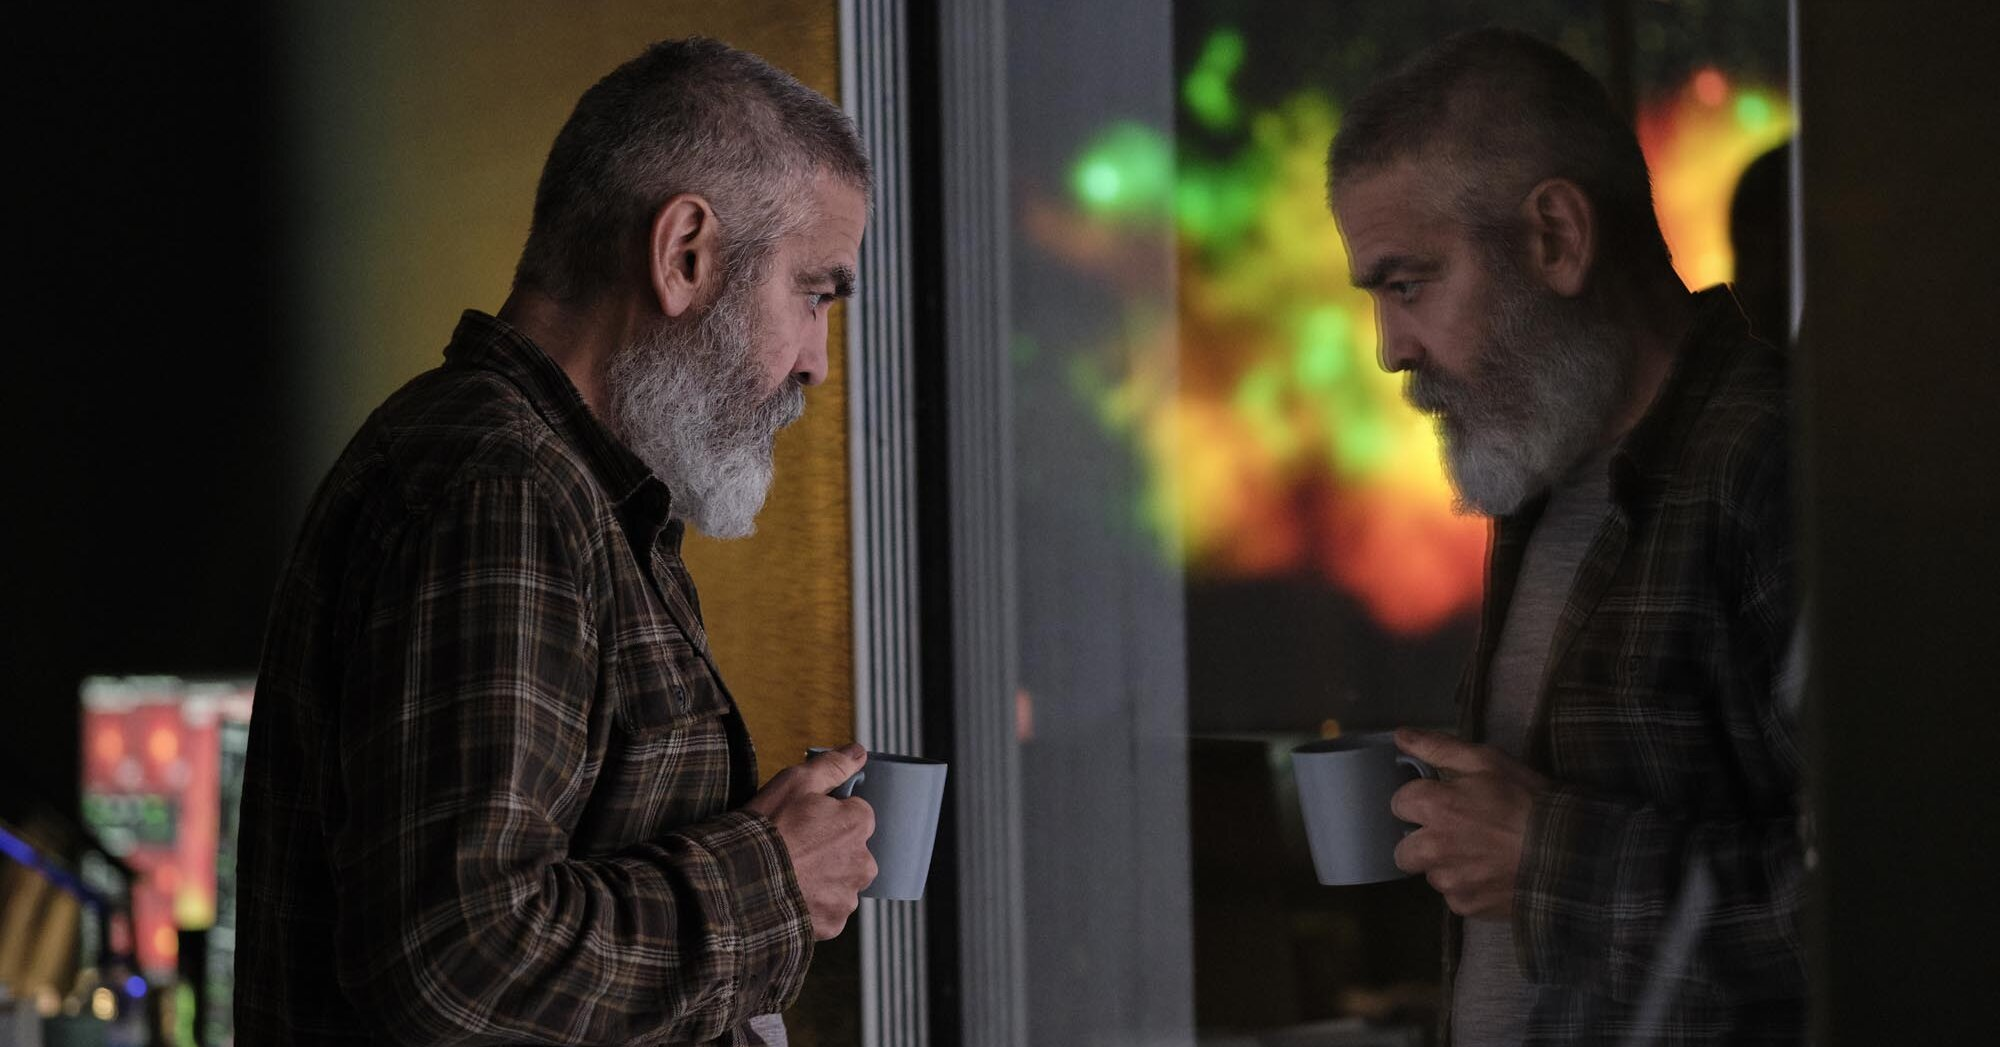 George Clooney issues a warning for humanity in 'The Midnight Sky'